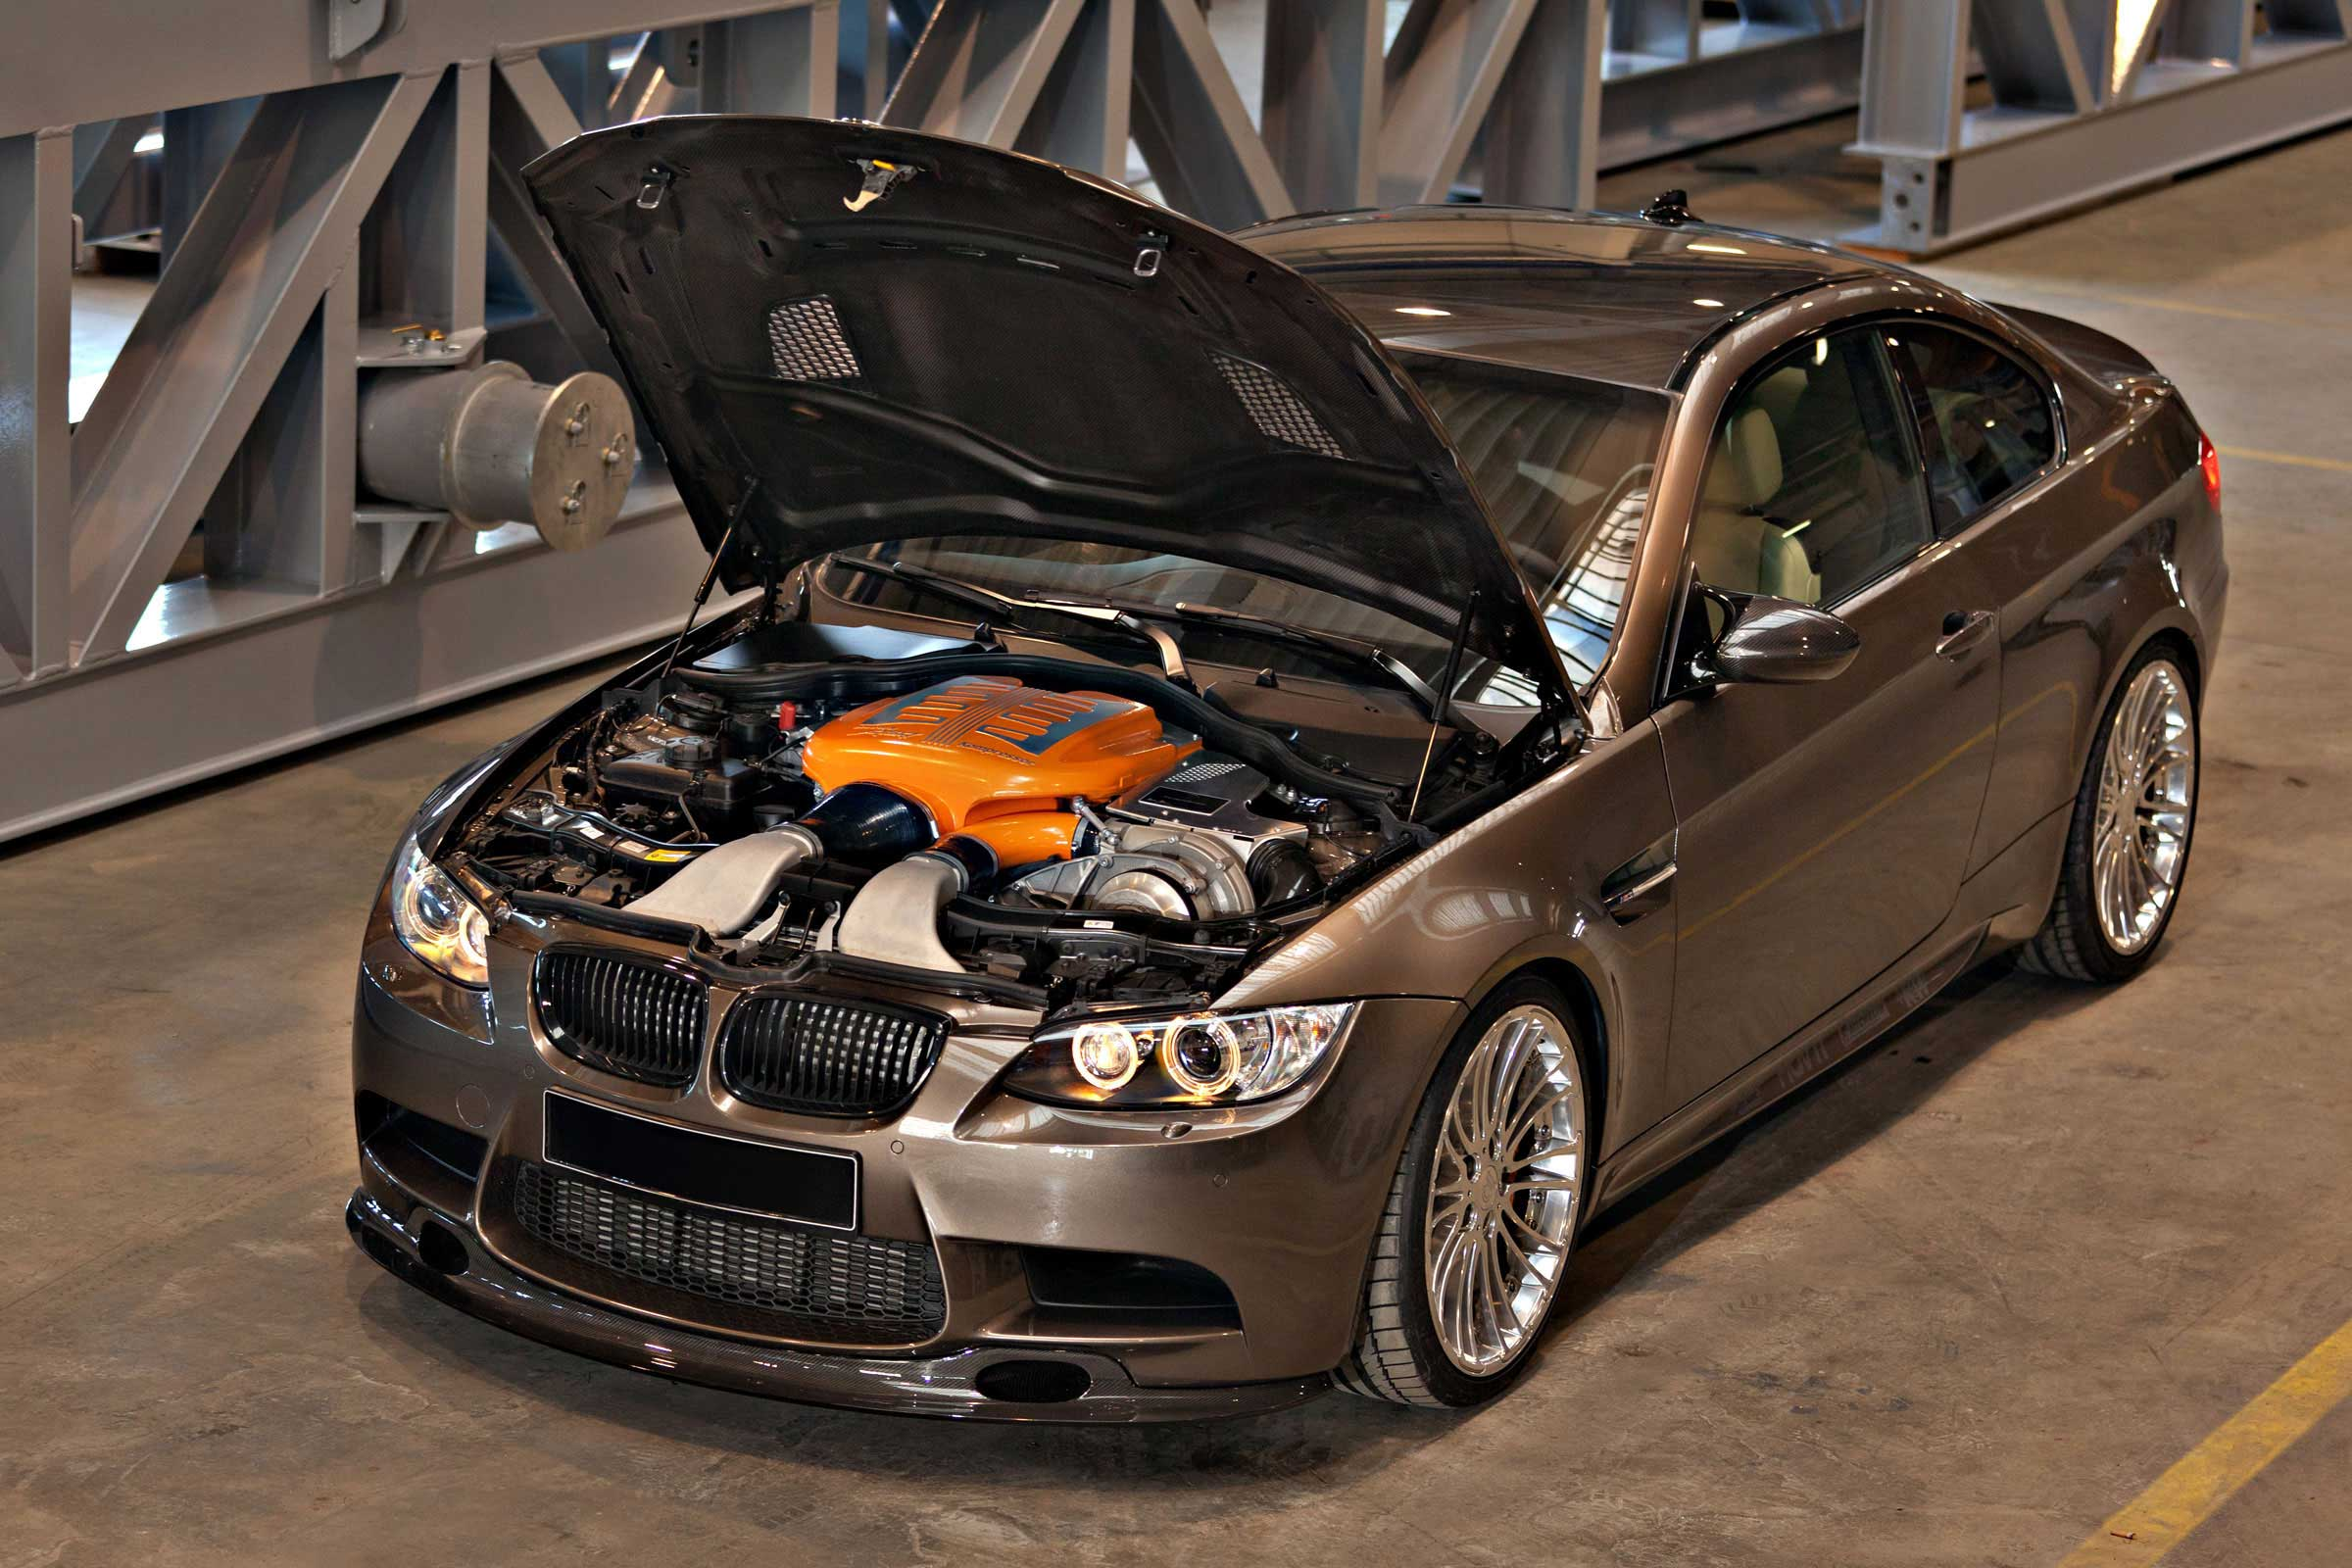 SK2CS FE2- 666* PS BMW M3 E9x V8 Kompressor